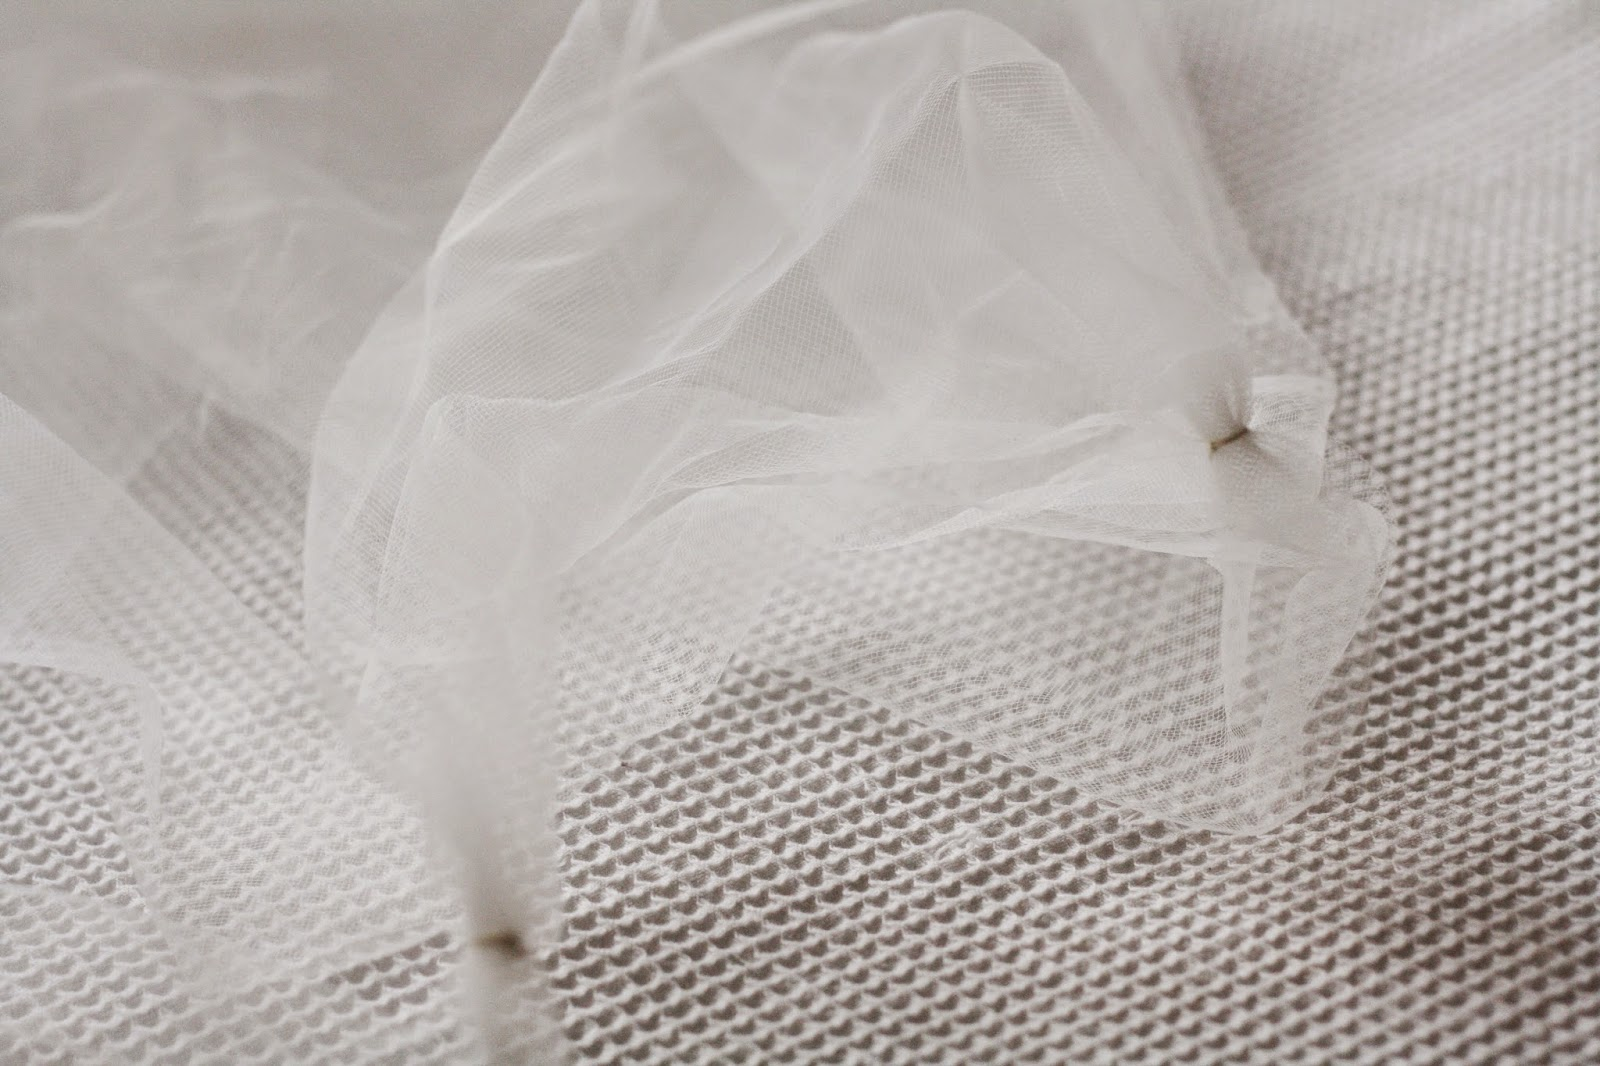 Wedding veil DIY